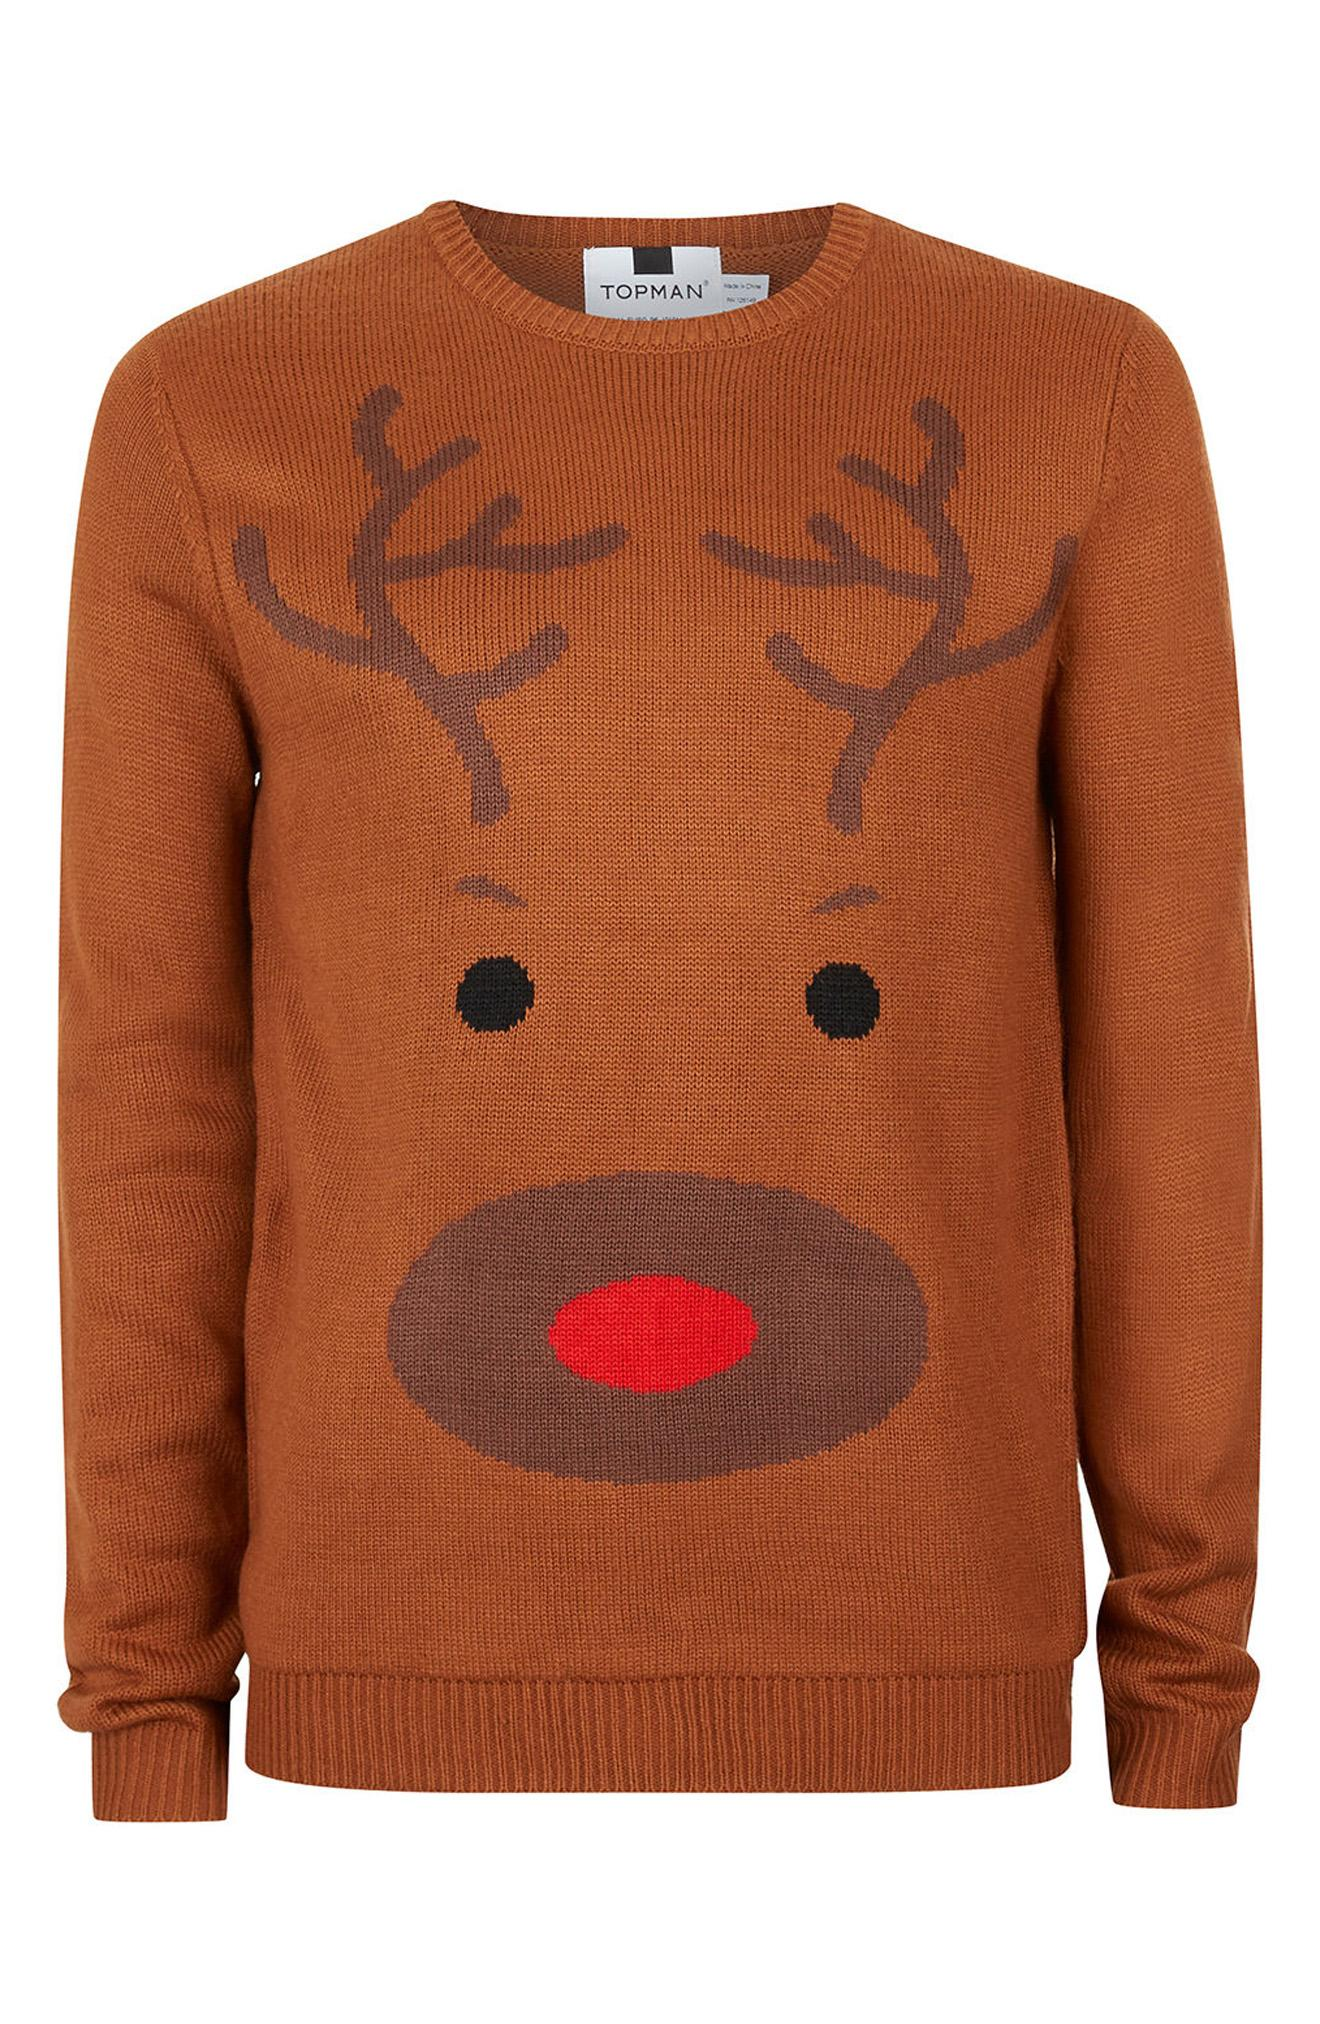 Topman Reindeer Face Sweatshirt, $55(Photo: Nordstrom)